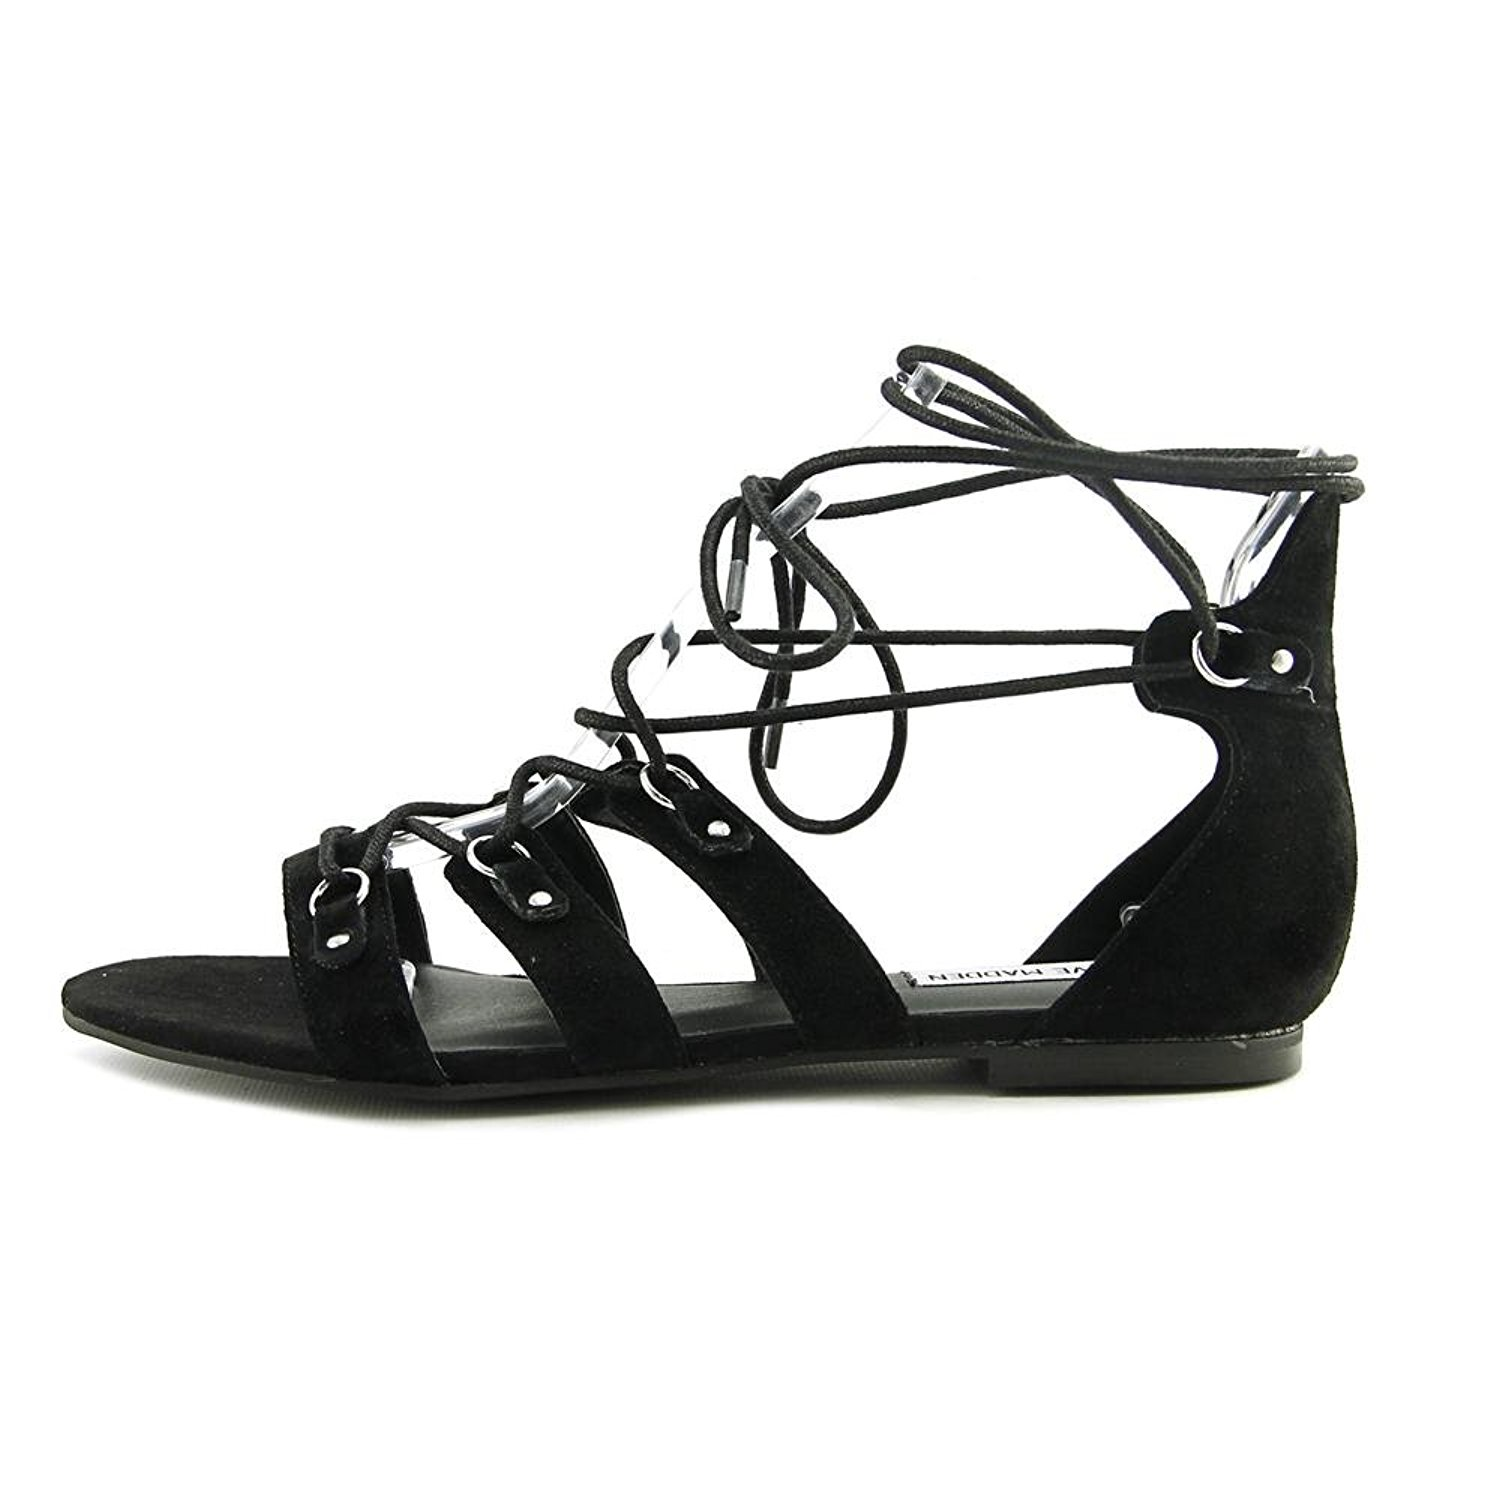 bfae5de8ca894 Details about Steve Madden Womens Carleigh Suede Open Toe Casual Gladiator  Sandals